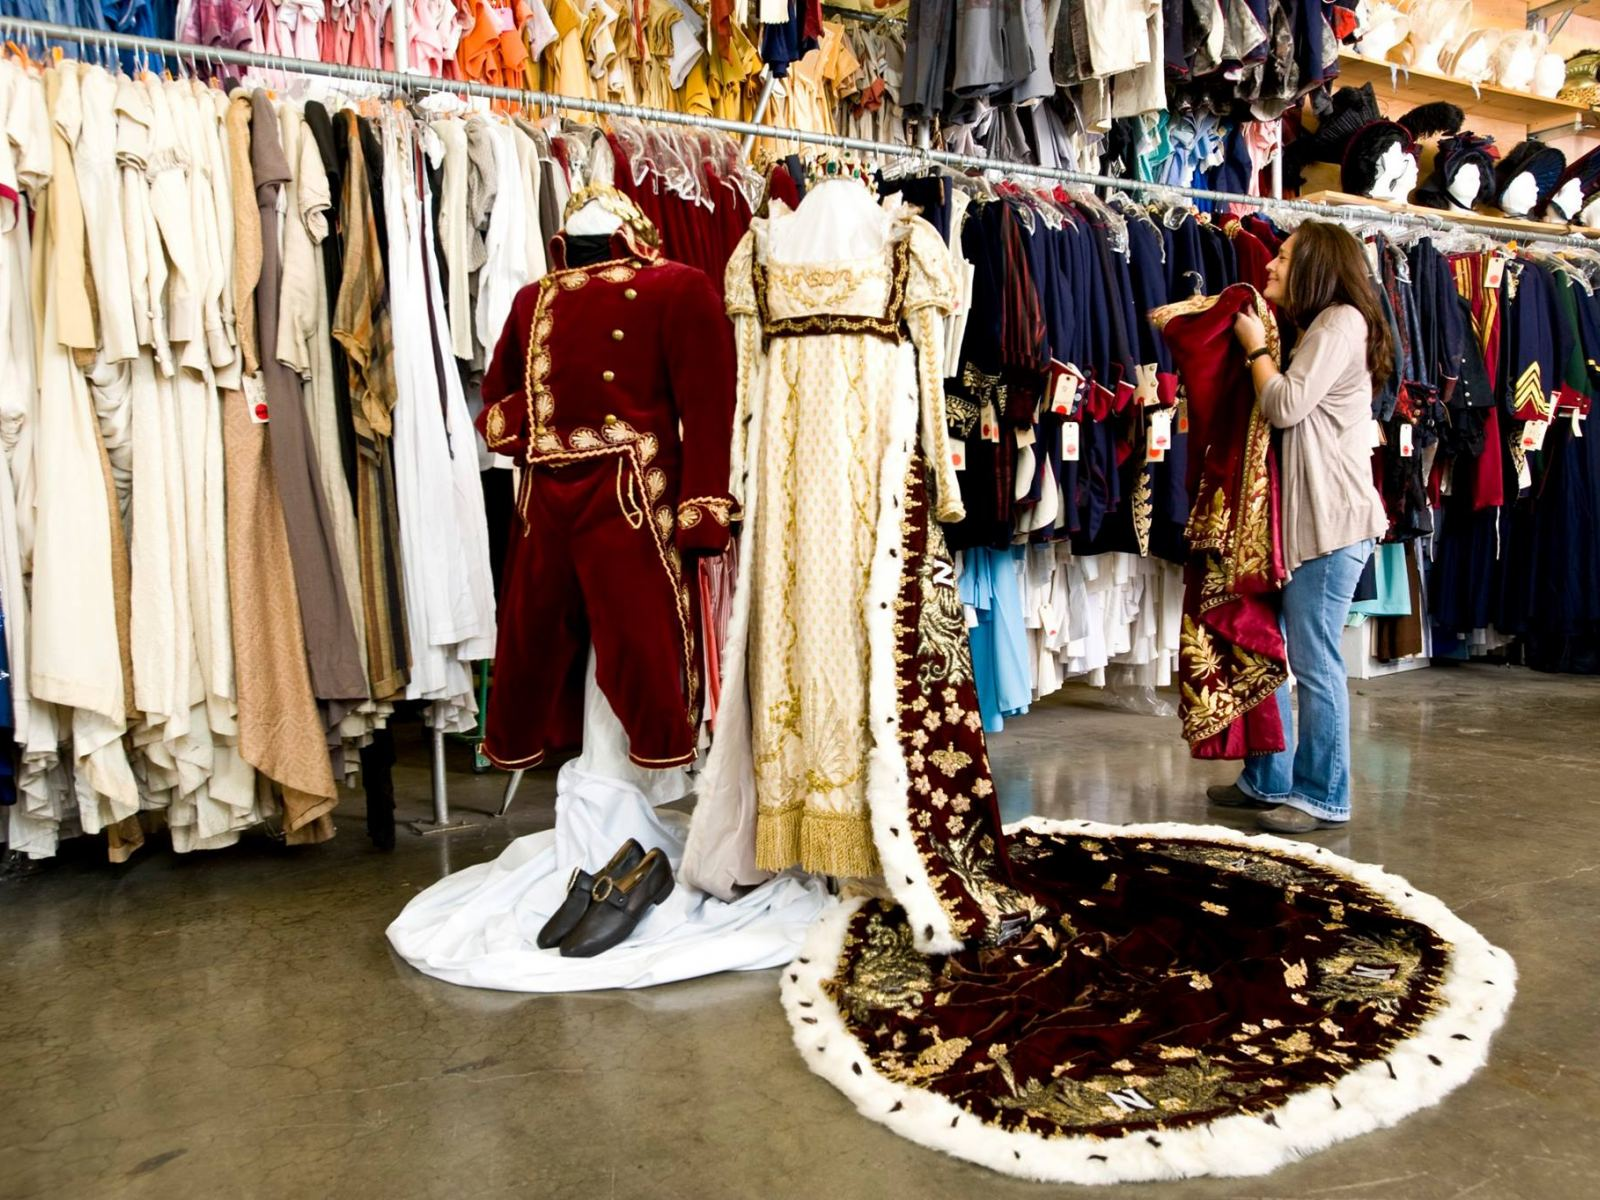 The Best Shops In La For Hollywood Hand Me Downs Discover Los Angeles